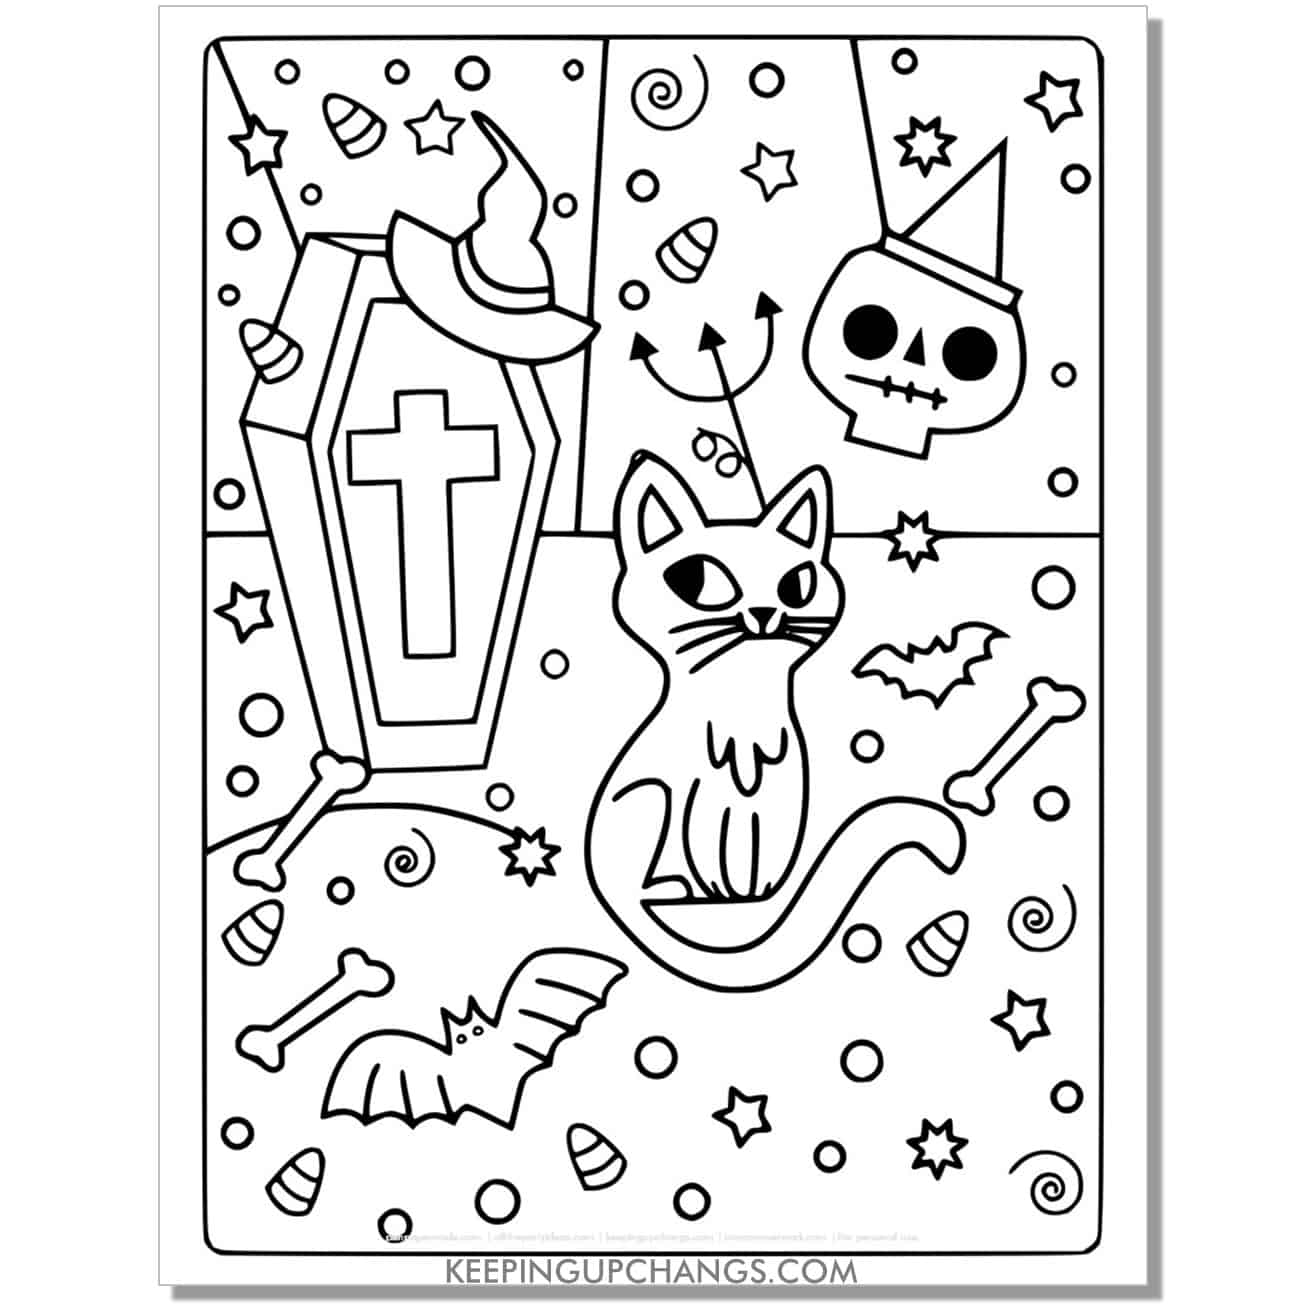 full size halloween cat, coffin, bat, candy corn coloring page.